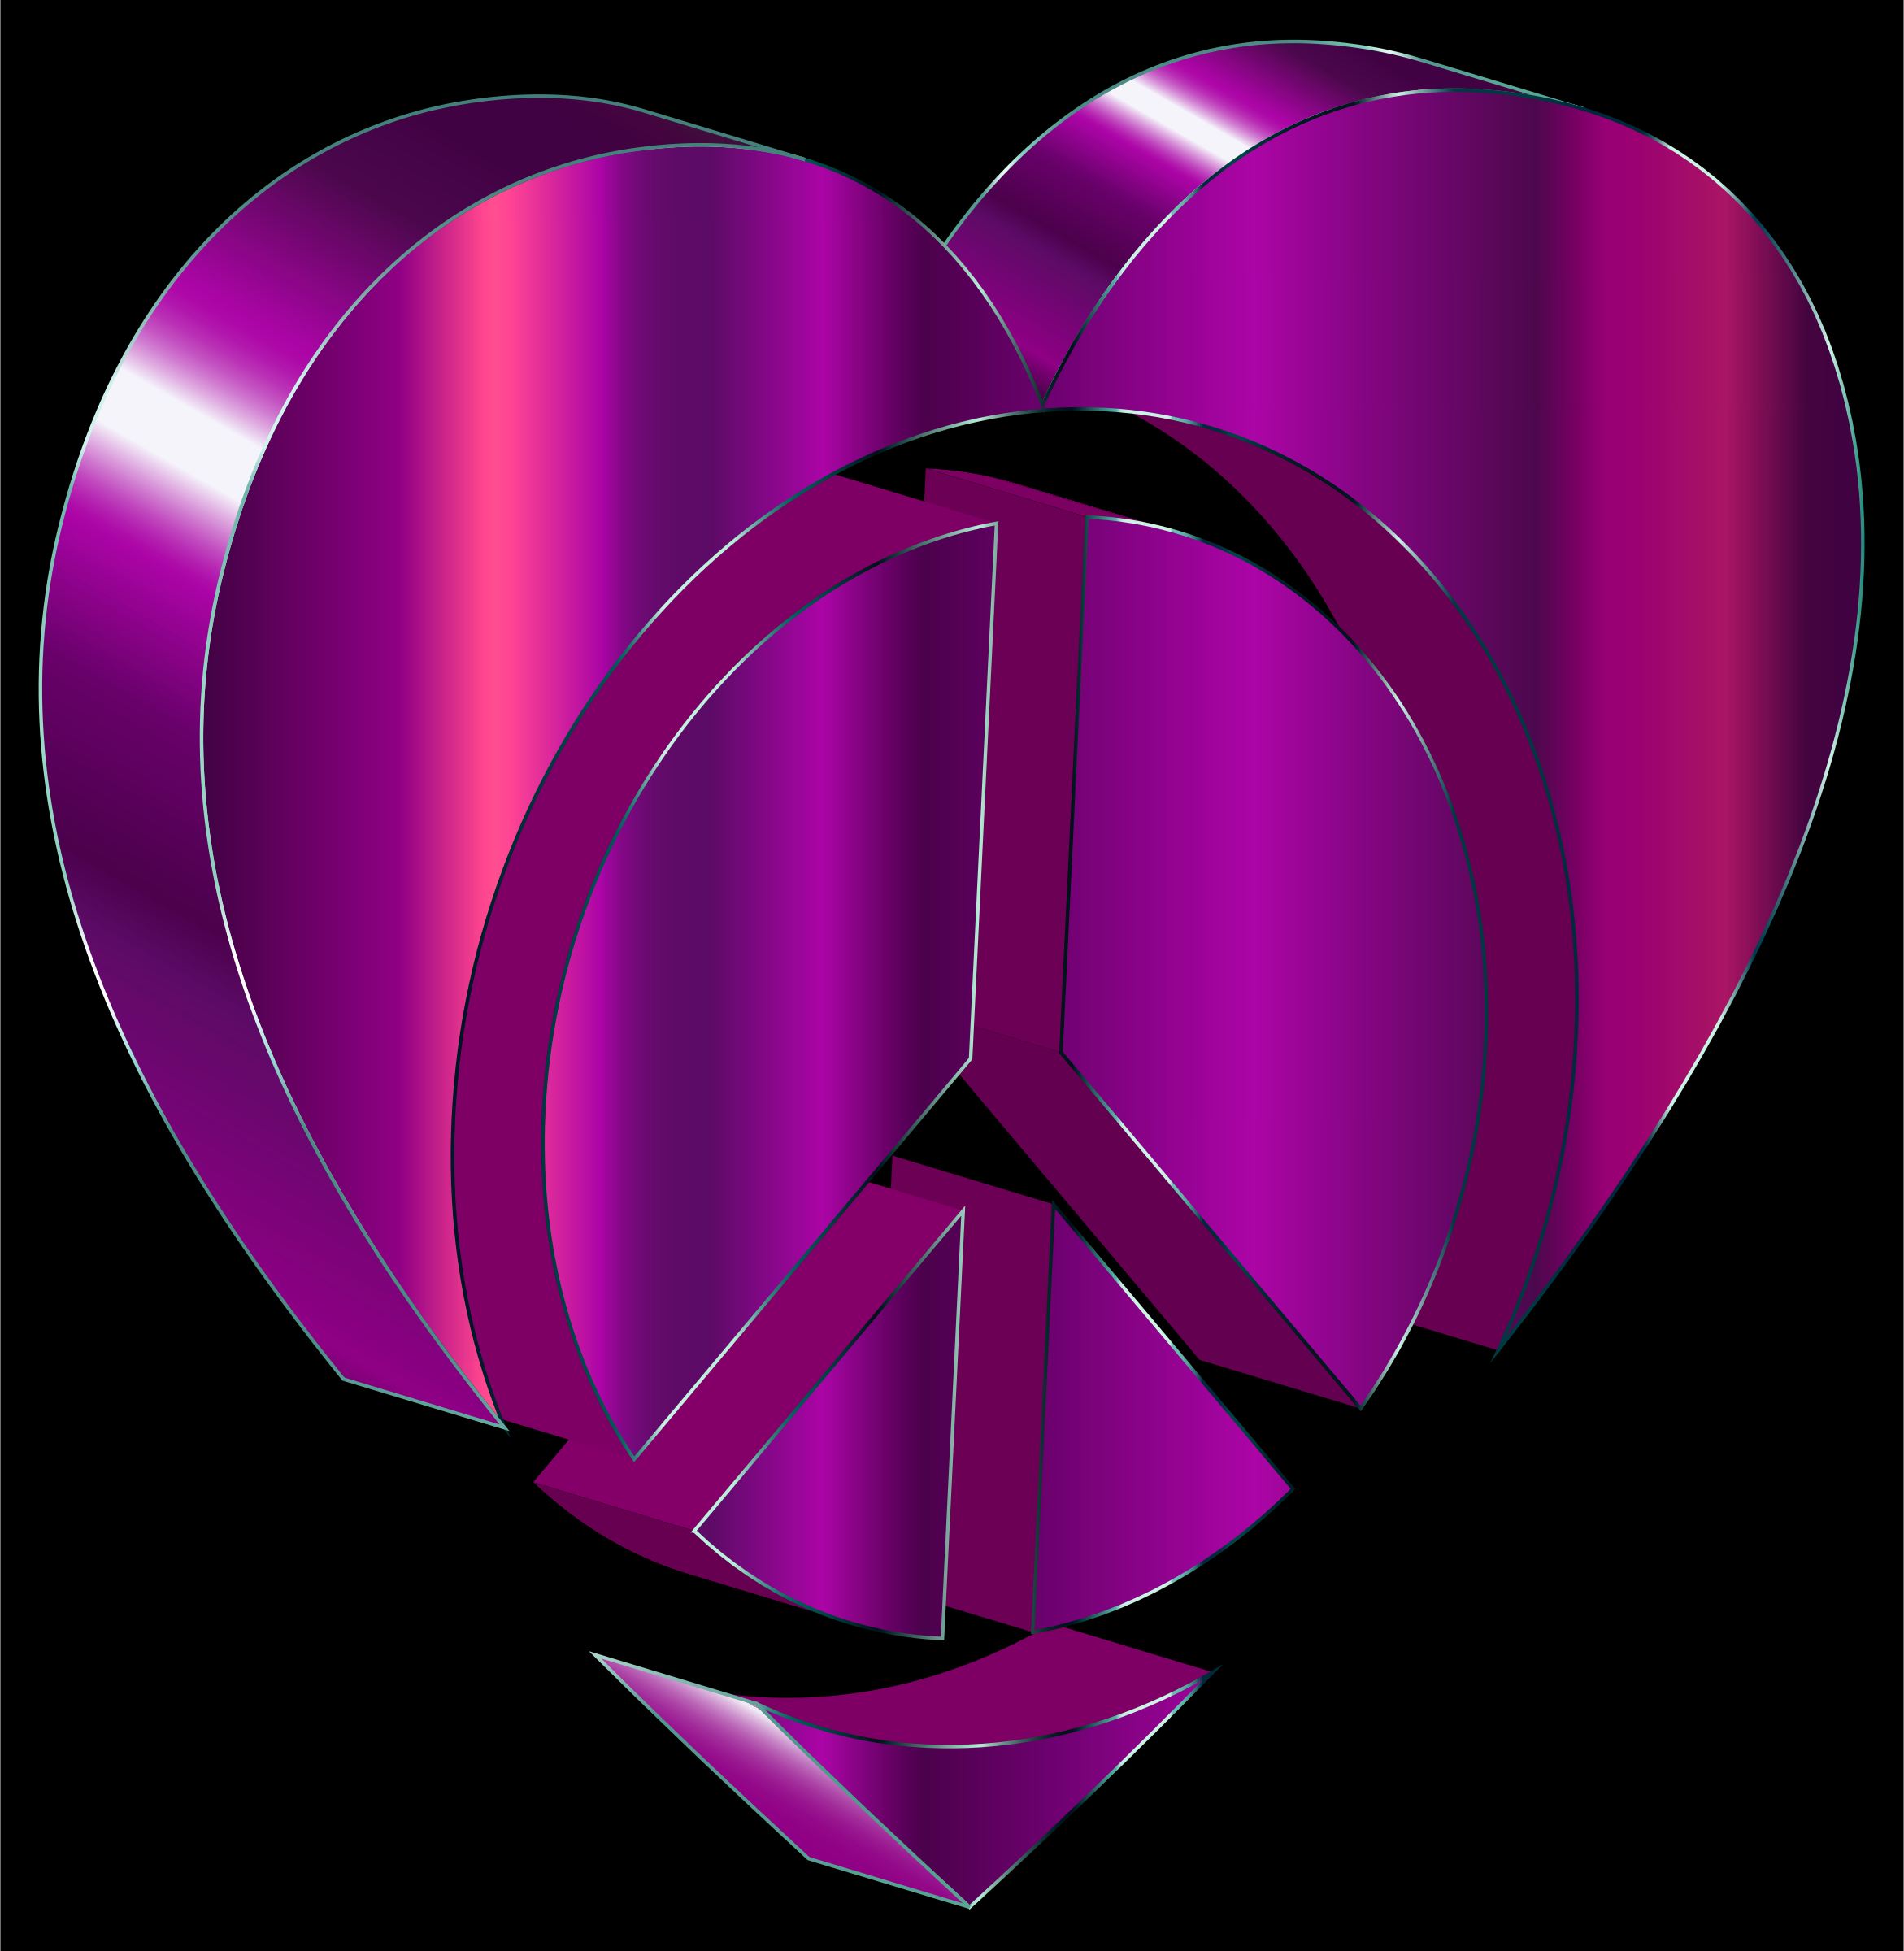 3D Peace Heart Amethyst by GDJ